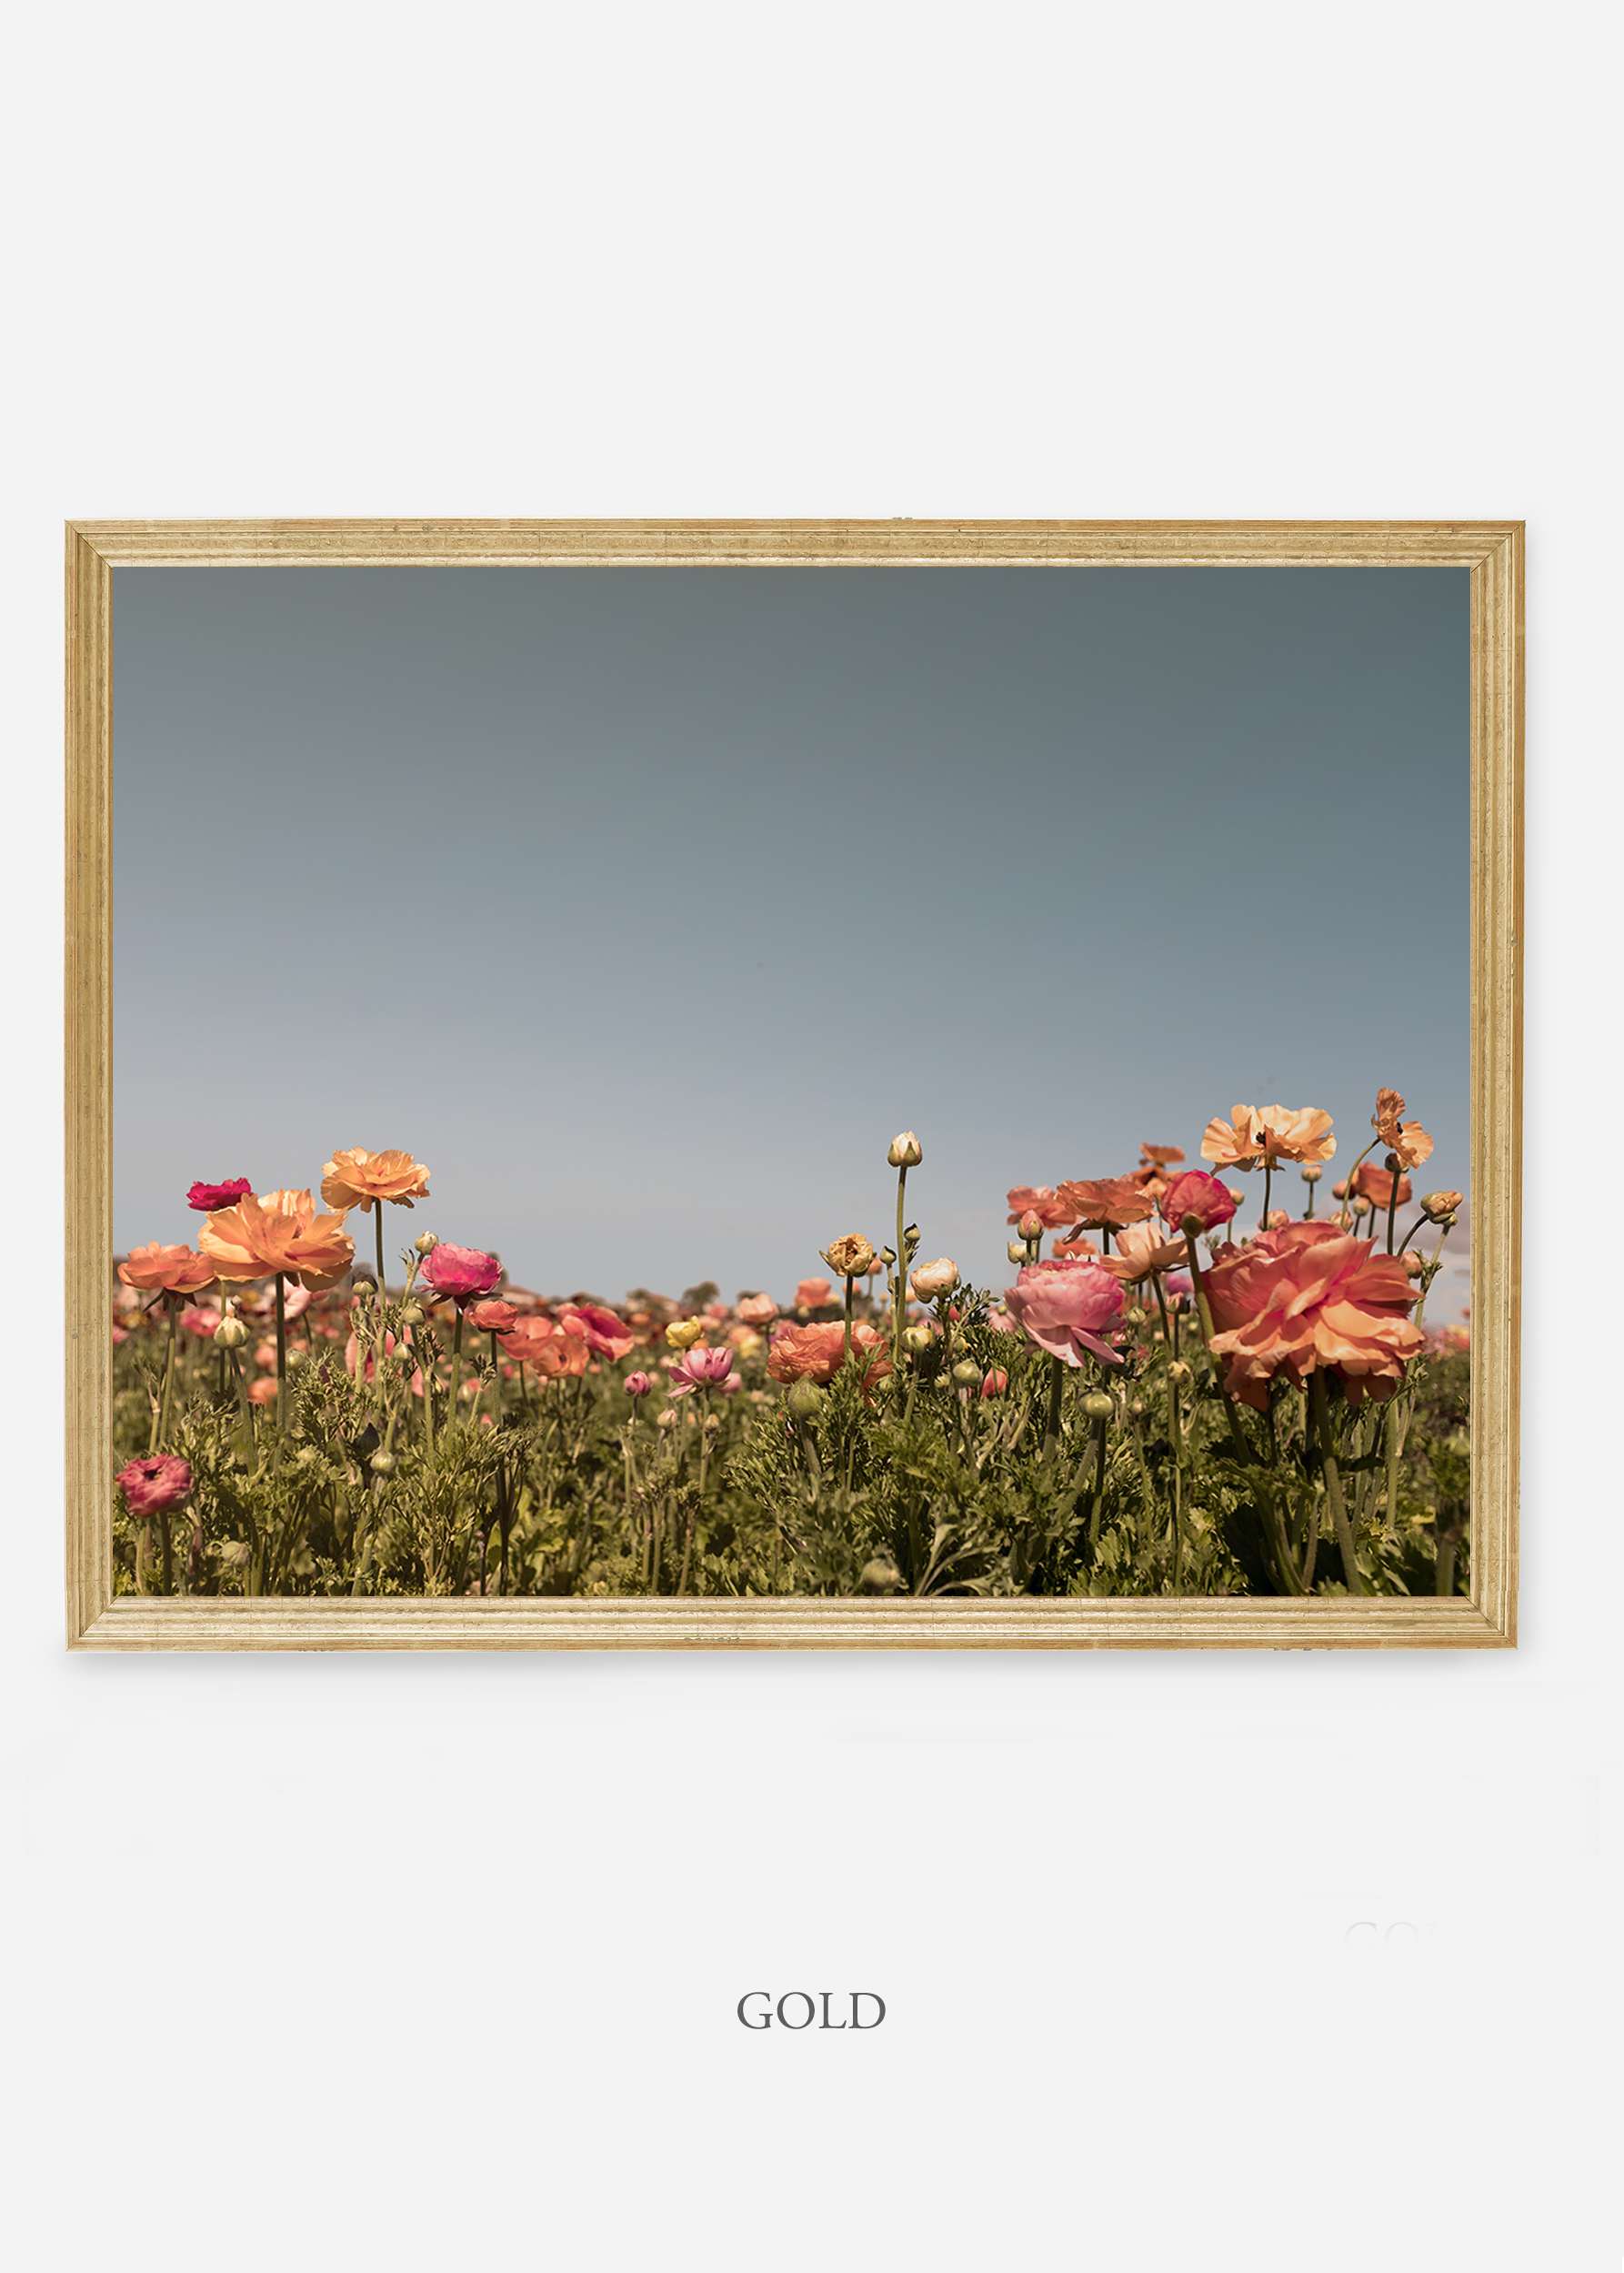 NoMat-GoldFrame-Floral-5-Wilder-California-Art-Floral-Home-decor-Prints-Dahlia-Botanical-Artwork-Interior-design.jpg